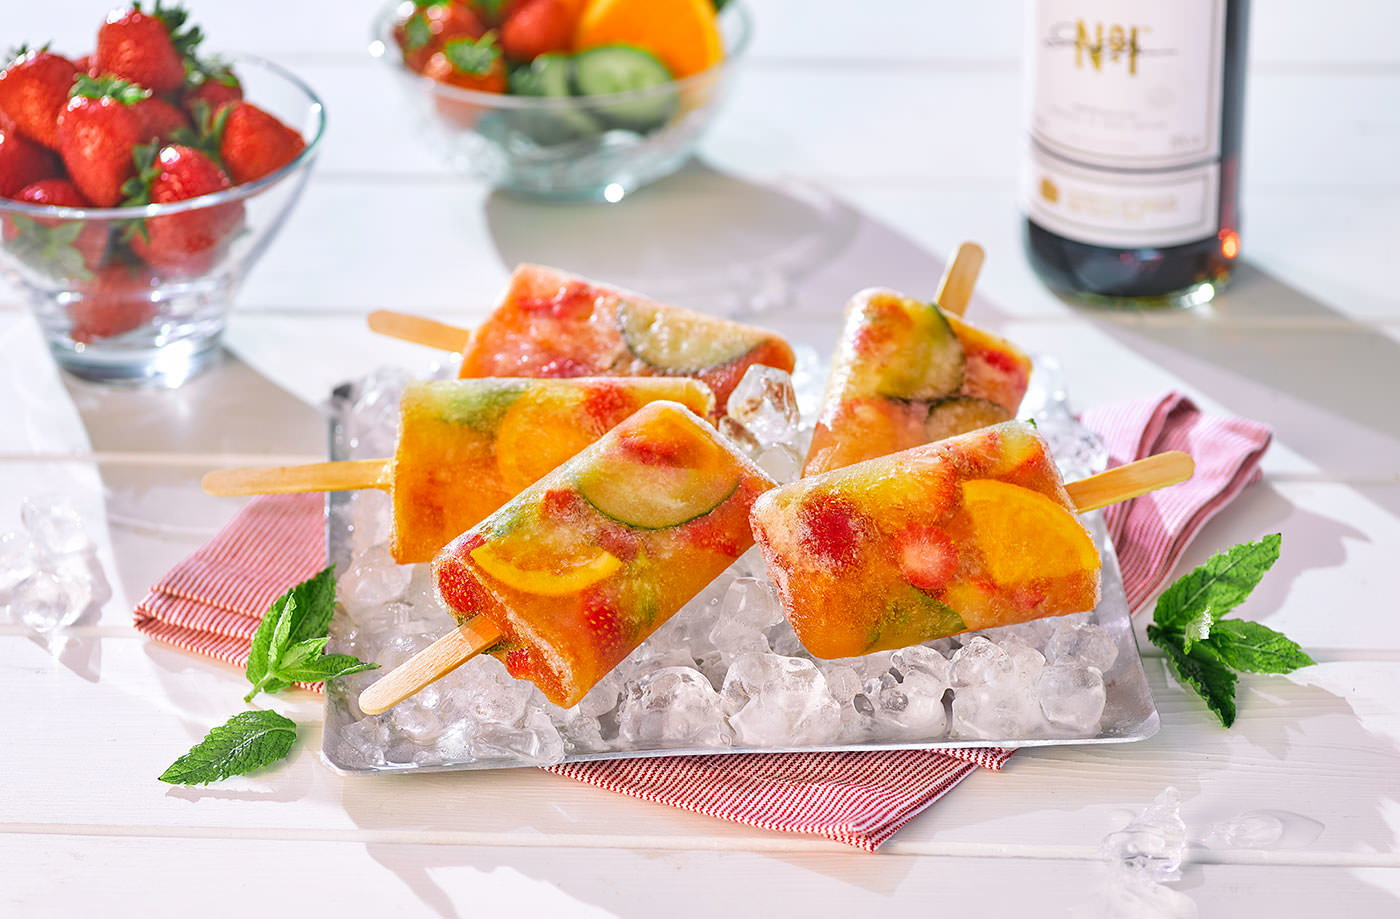 Pimm's ice lollies